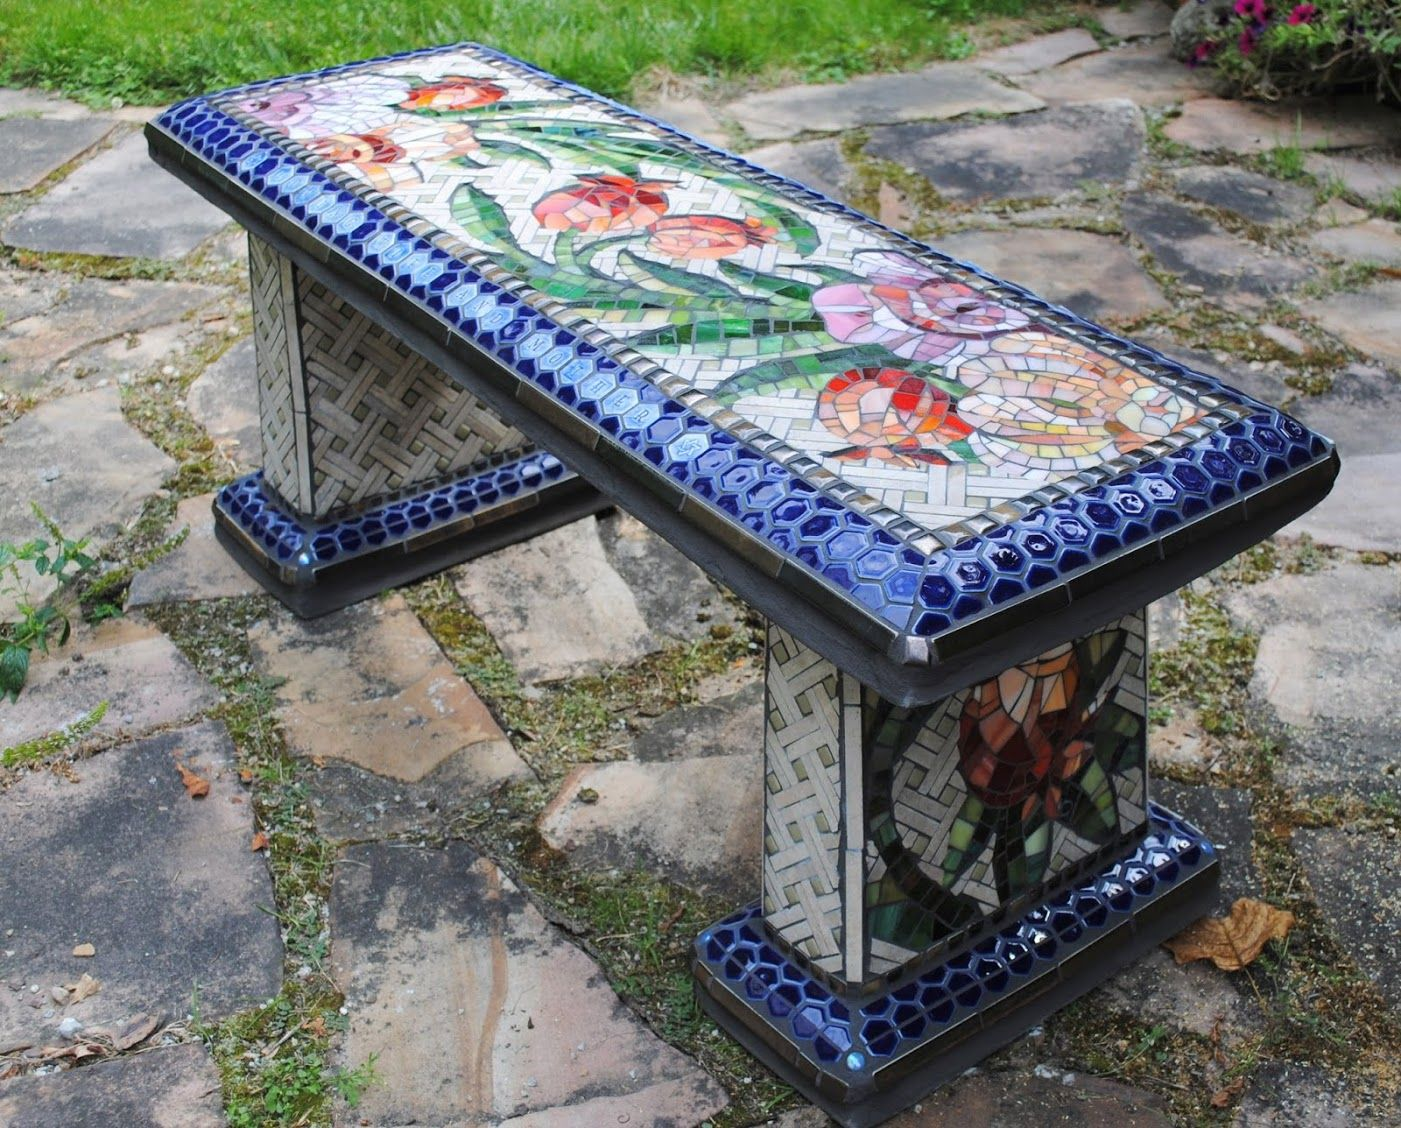 Gardening Bench Page 5 In 2020 Mosaic Garden Mosaic Furniture Mosaic Garden Art